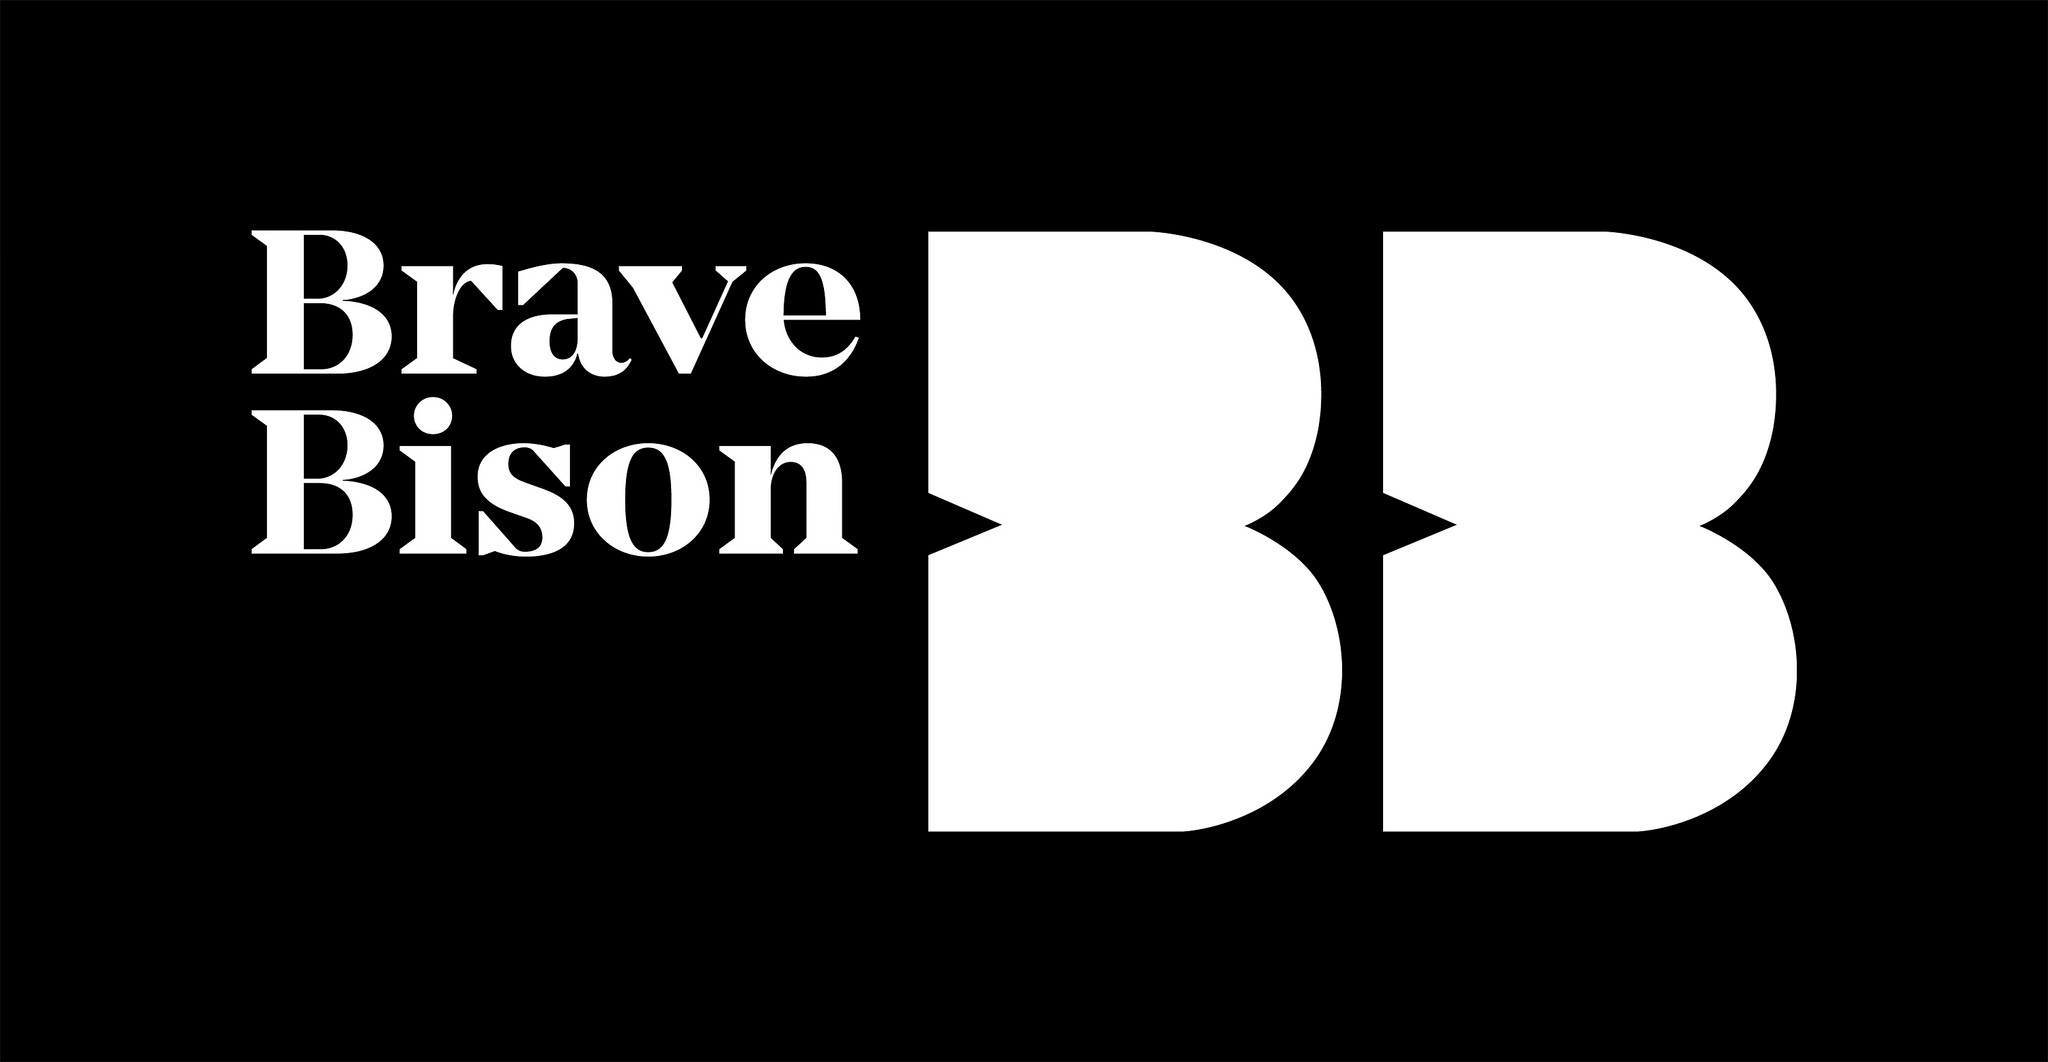 brave bison digital marketing agency singapore